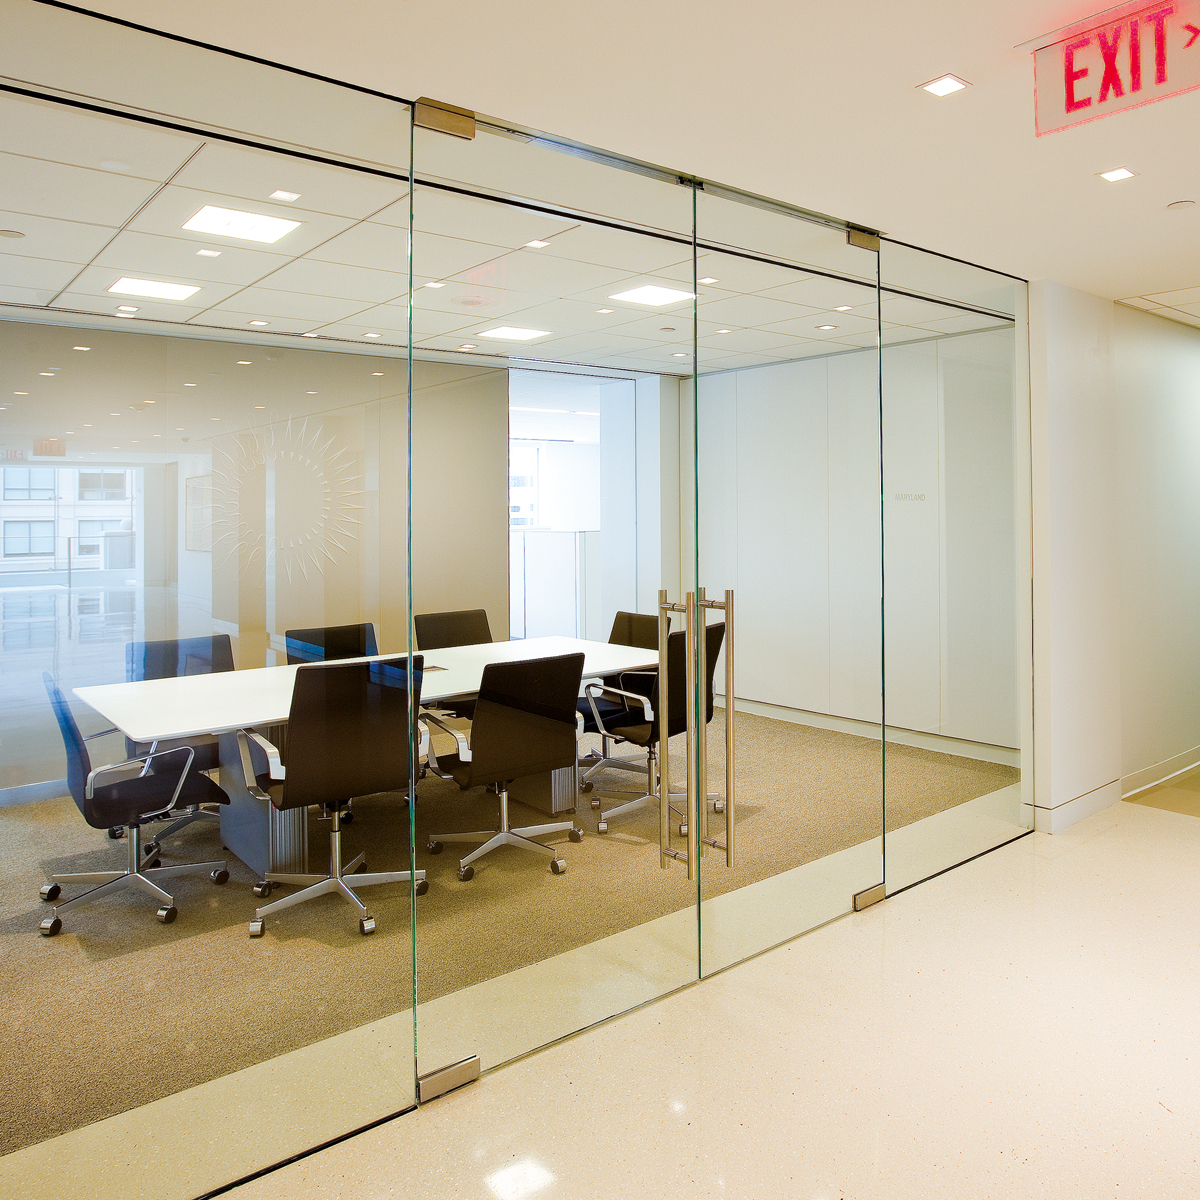 Dormakaba interior glass wall systems transparency and for Sliding glass wall systems